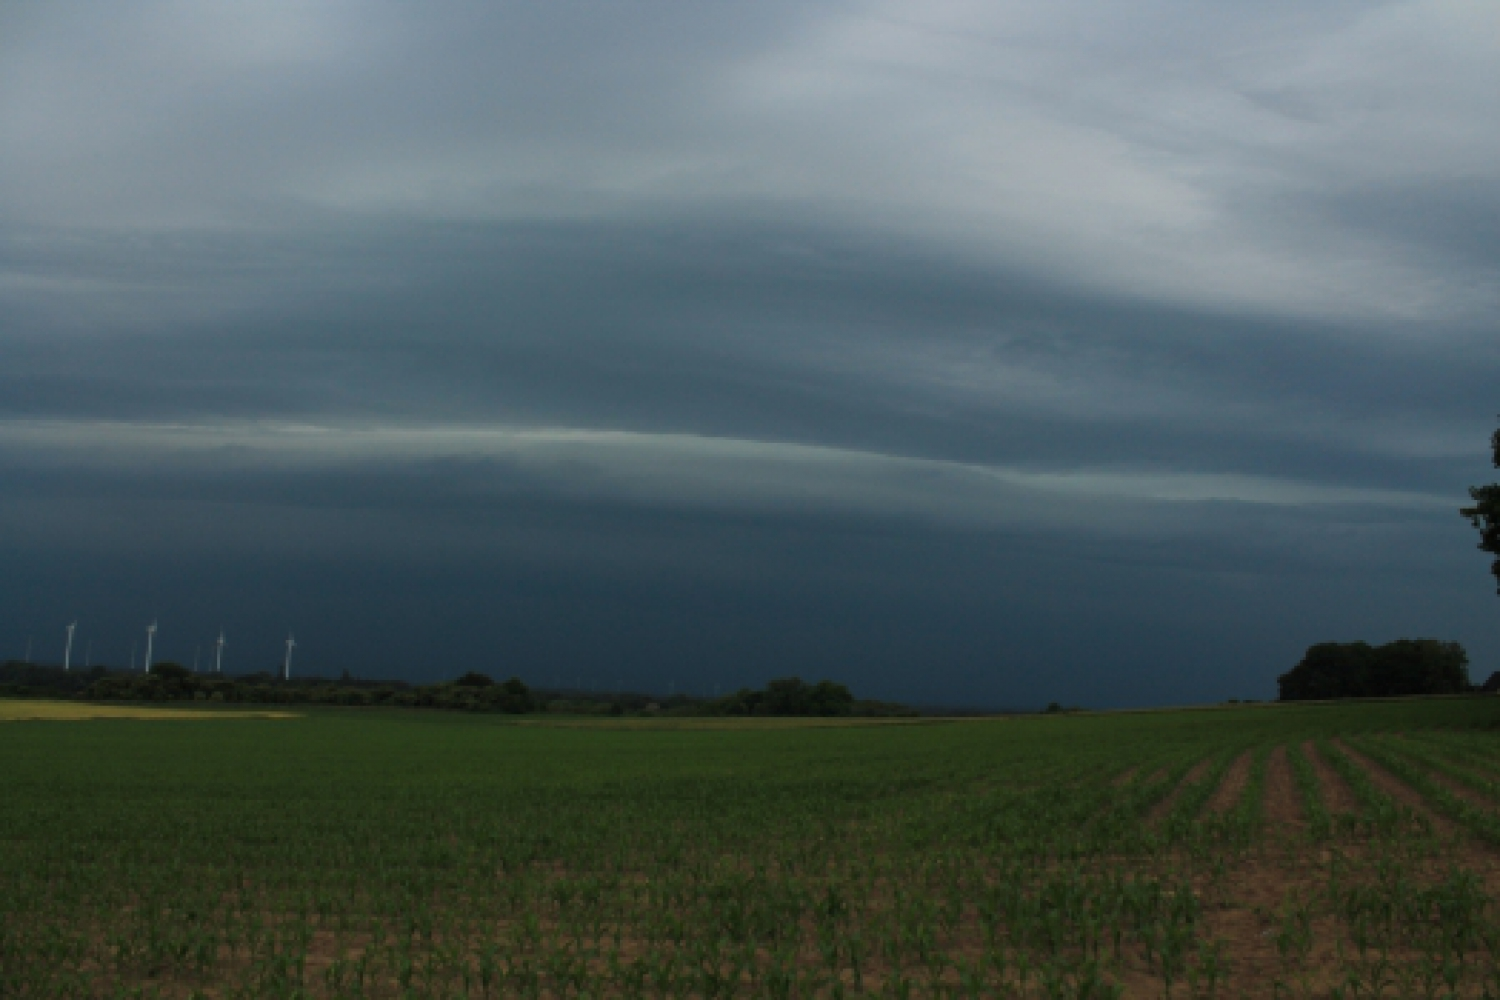 Shelfcloud am 08.06.2015